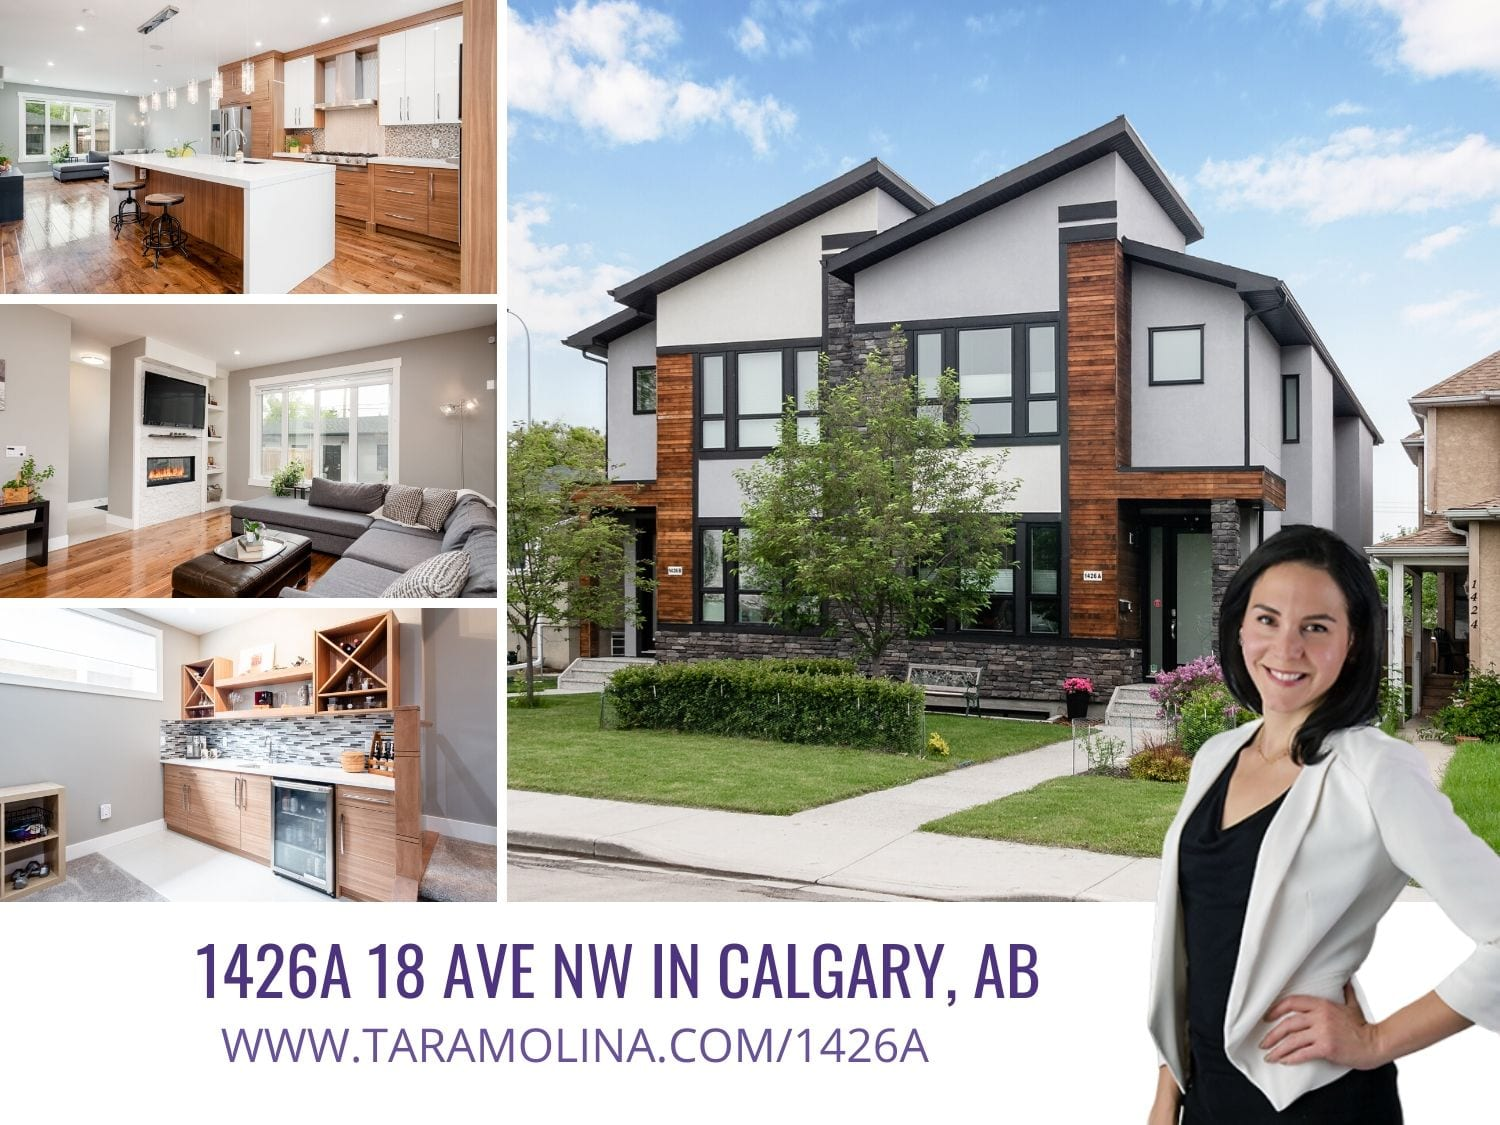 1426A 18 Ave NW in Calgary, ab - 1500 x 1125